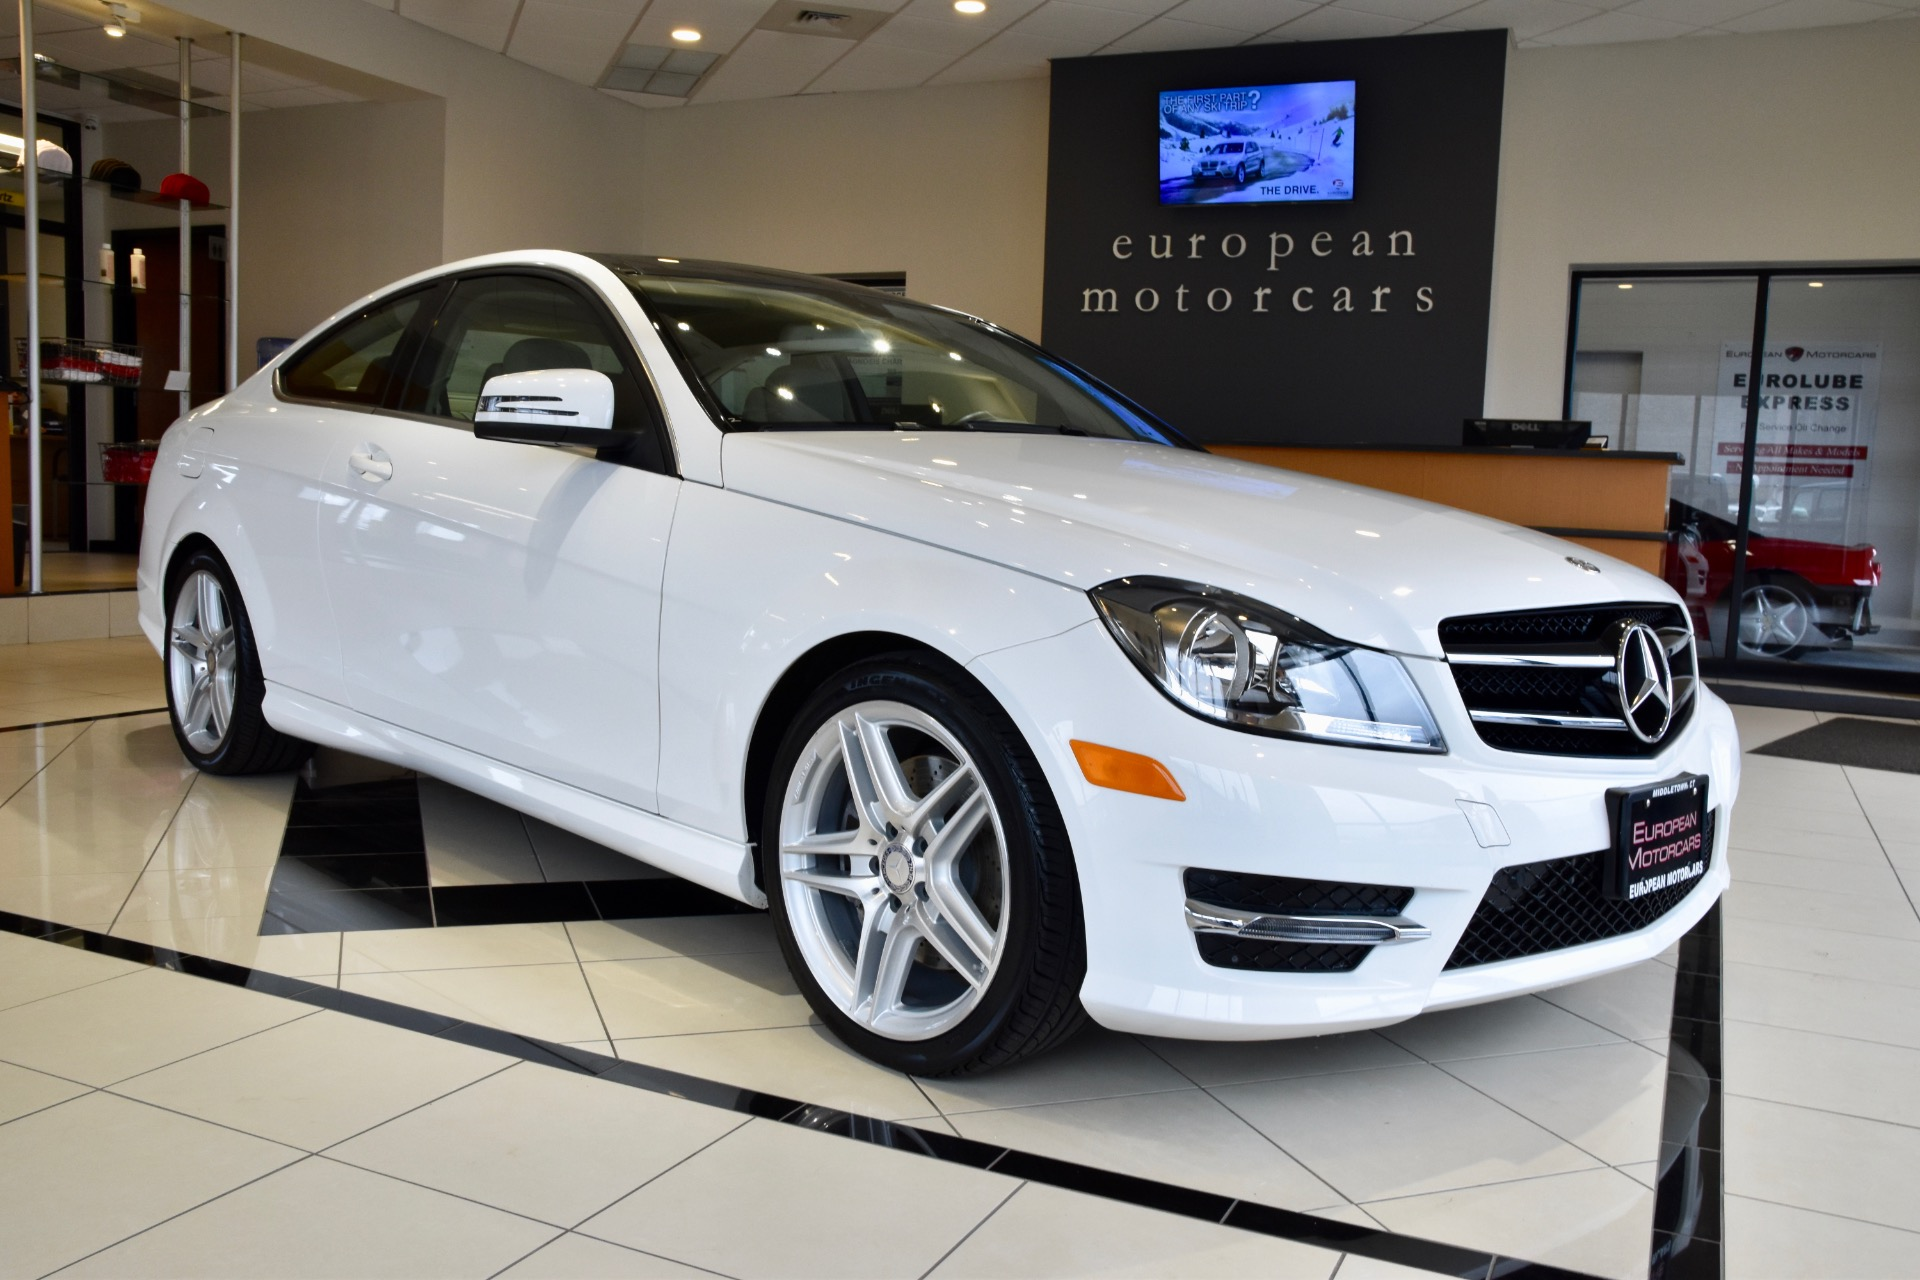 2015 mercedes benz c class c 350 4matic for sale near for Euro motorcars mercedes benz